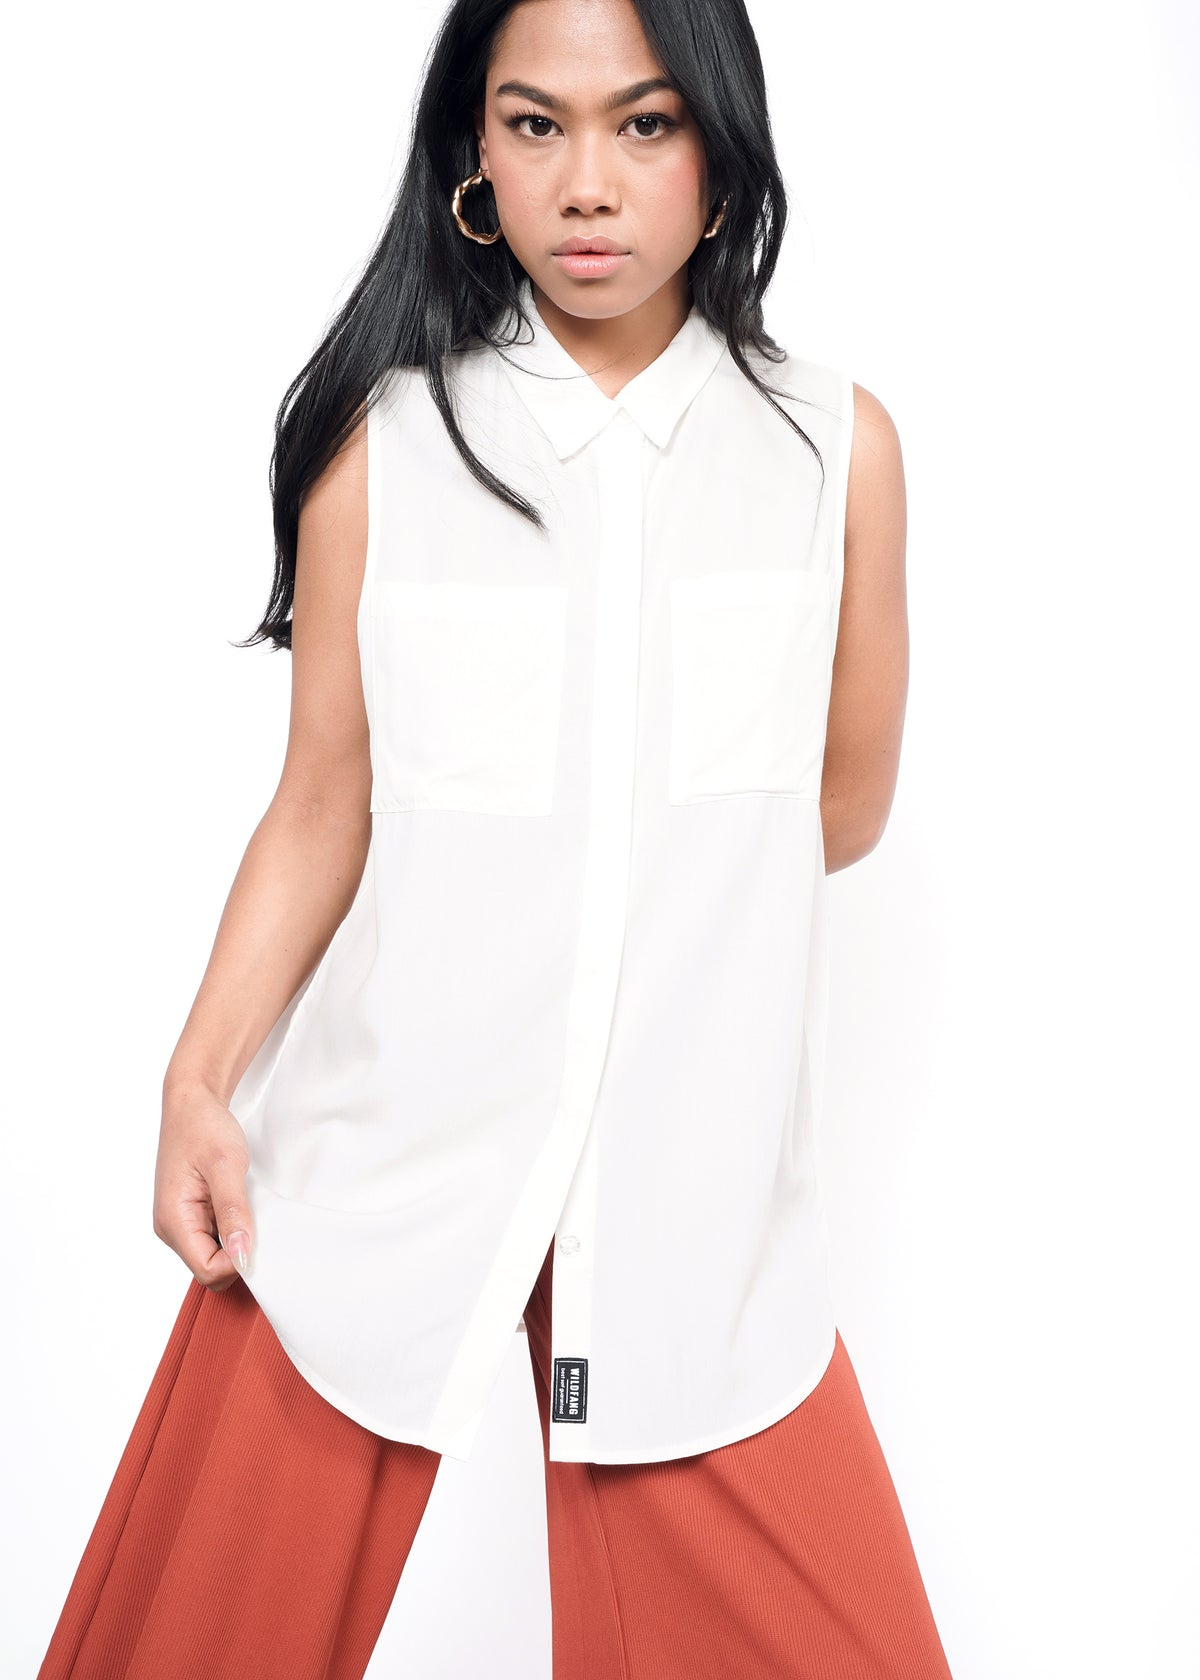 Model wearing white sleeveless drapey button up shirt in size XS, with orange pants